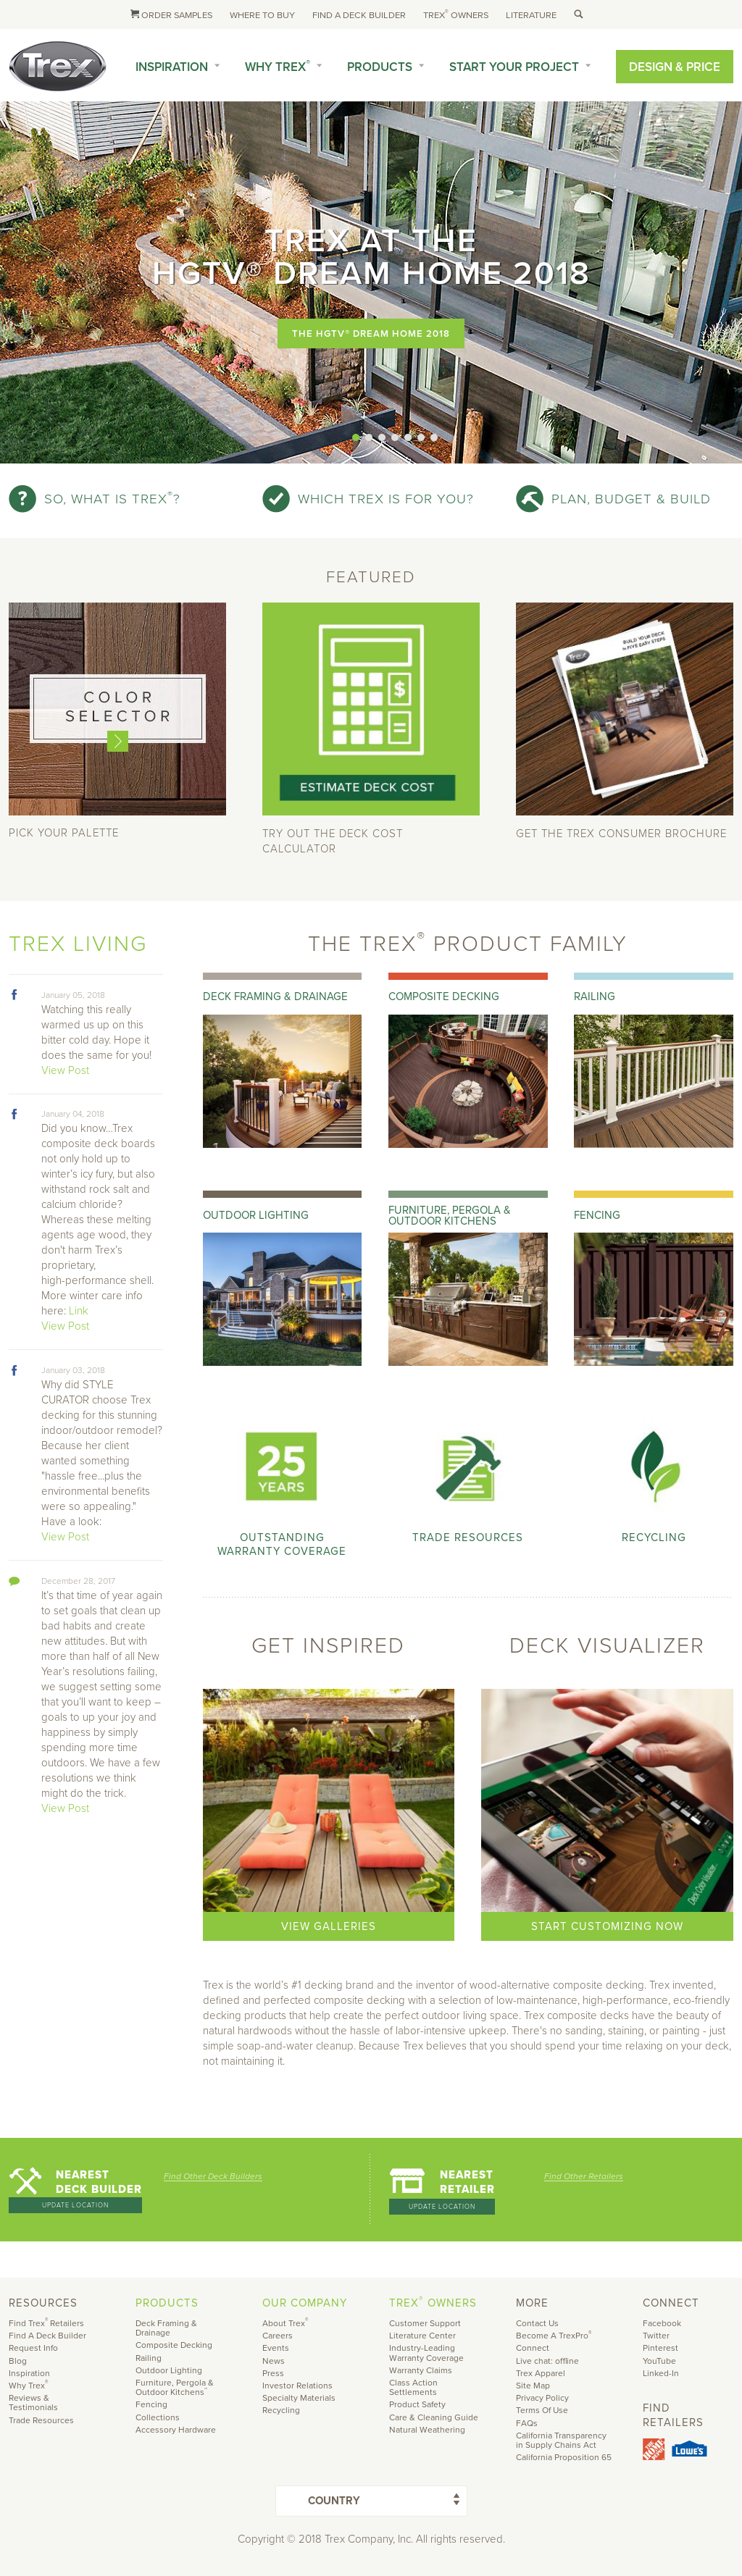 Trex Competitors, Revenue and Employees - Owler Company Profile